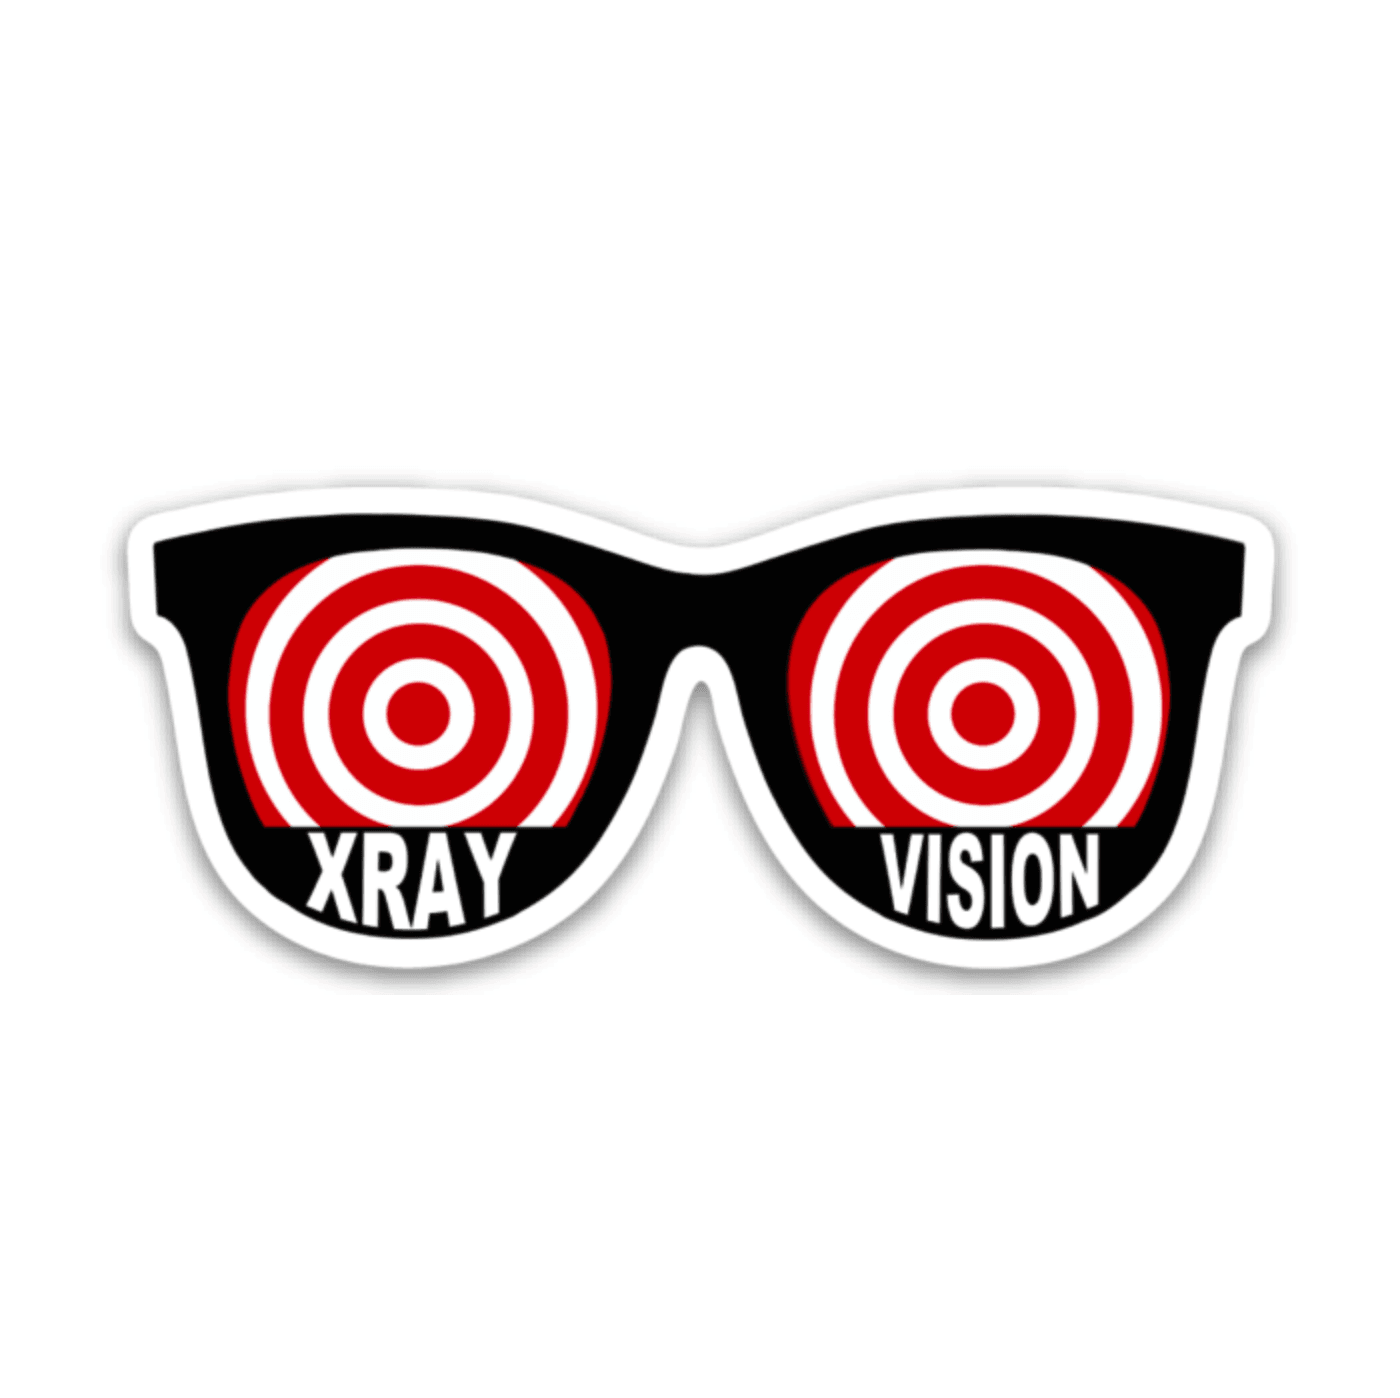 Xray Vision Glasses Decal - Rad Girl Creations